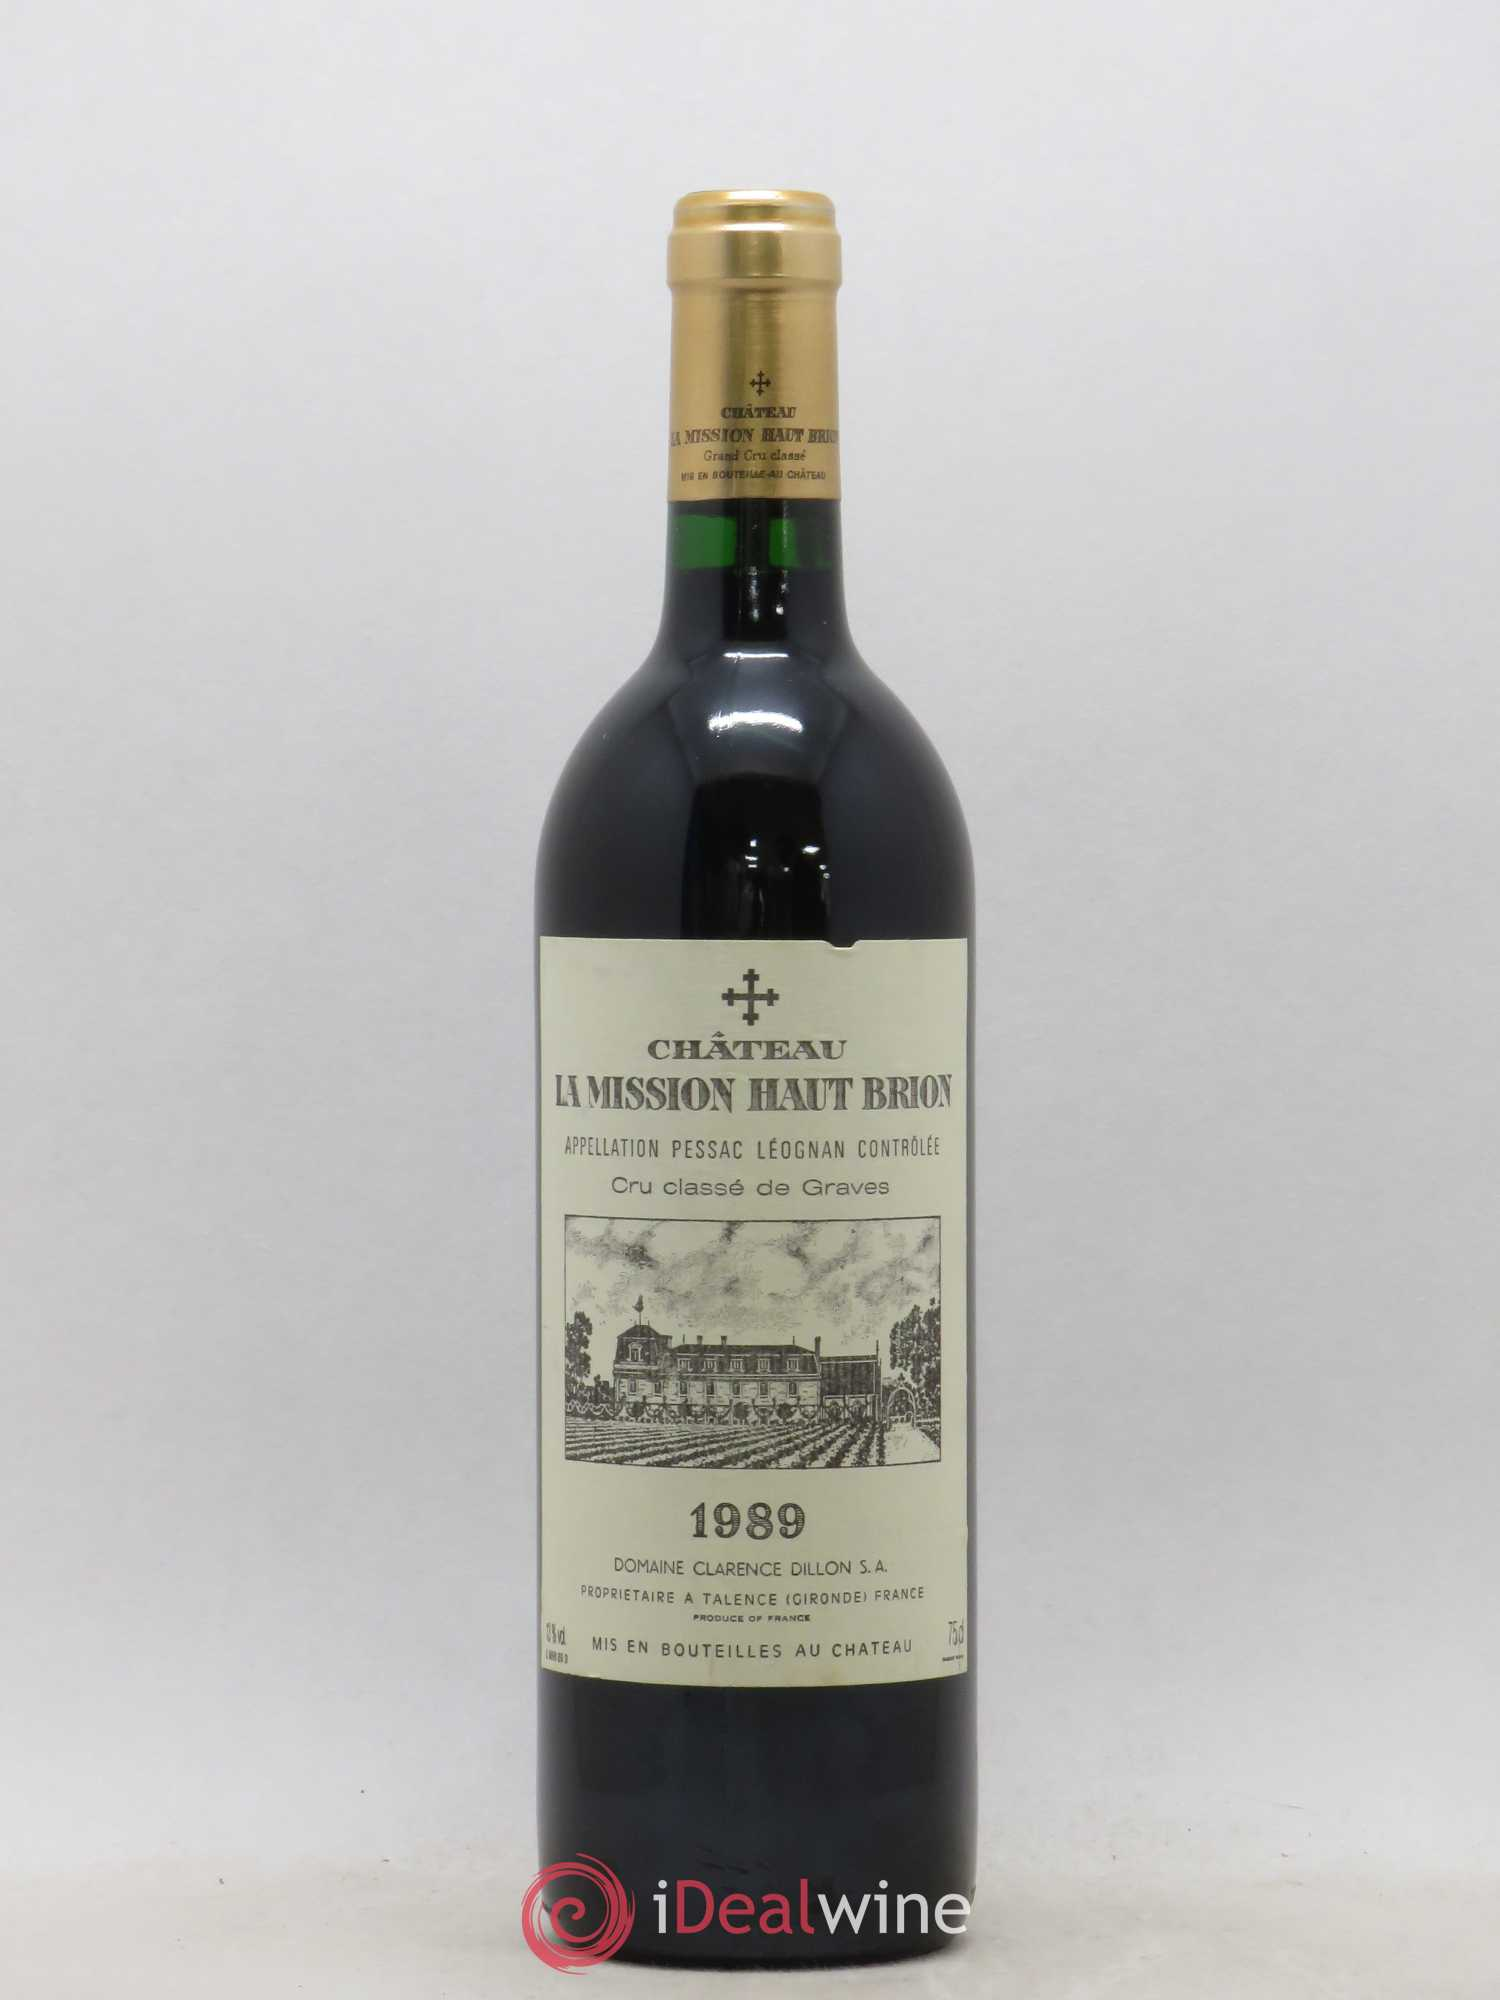 Château La Mission Haut-Brion Cru Classé de Graves  1989 - Lot of 1 Bottle